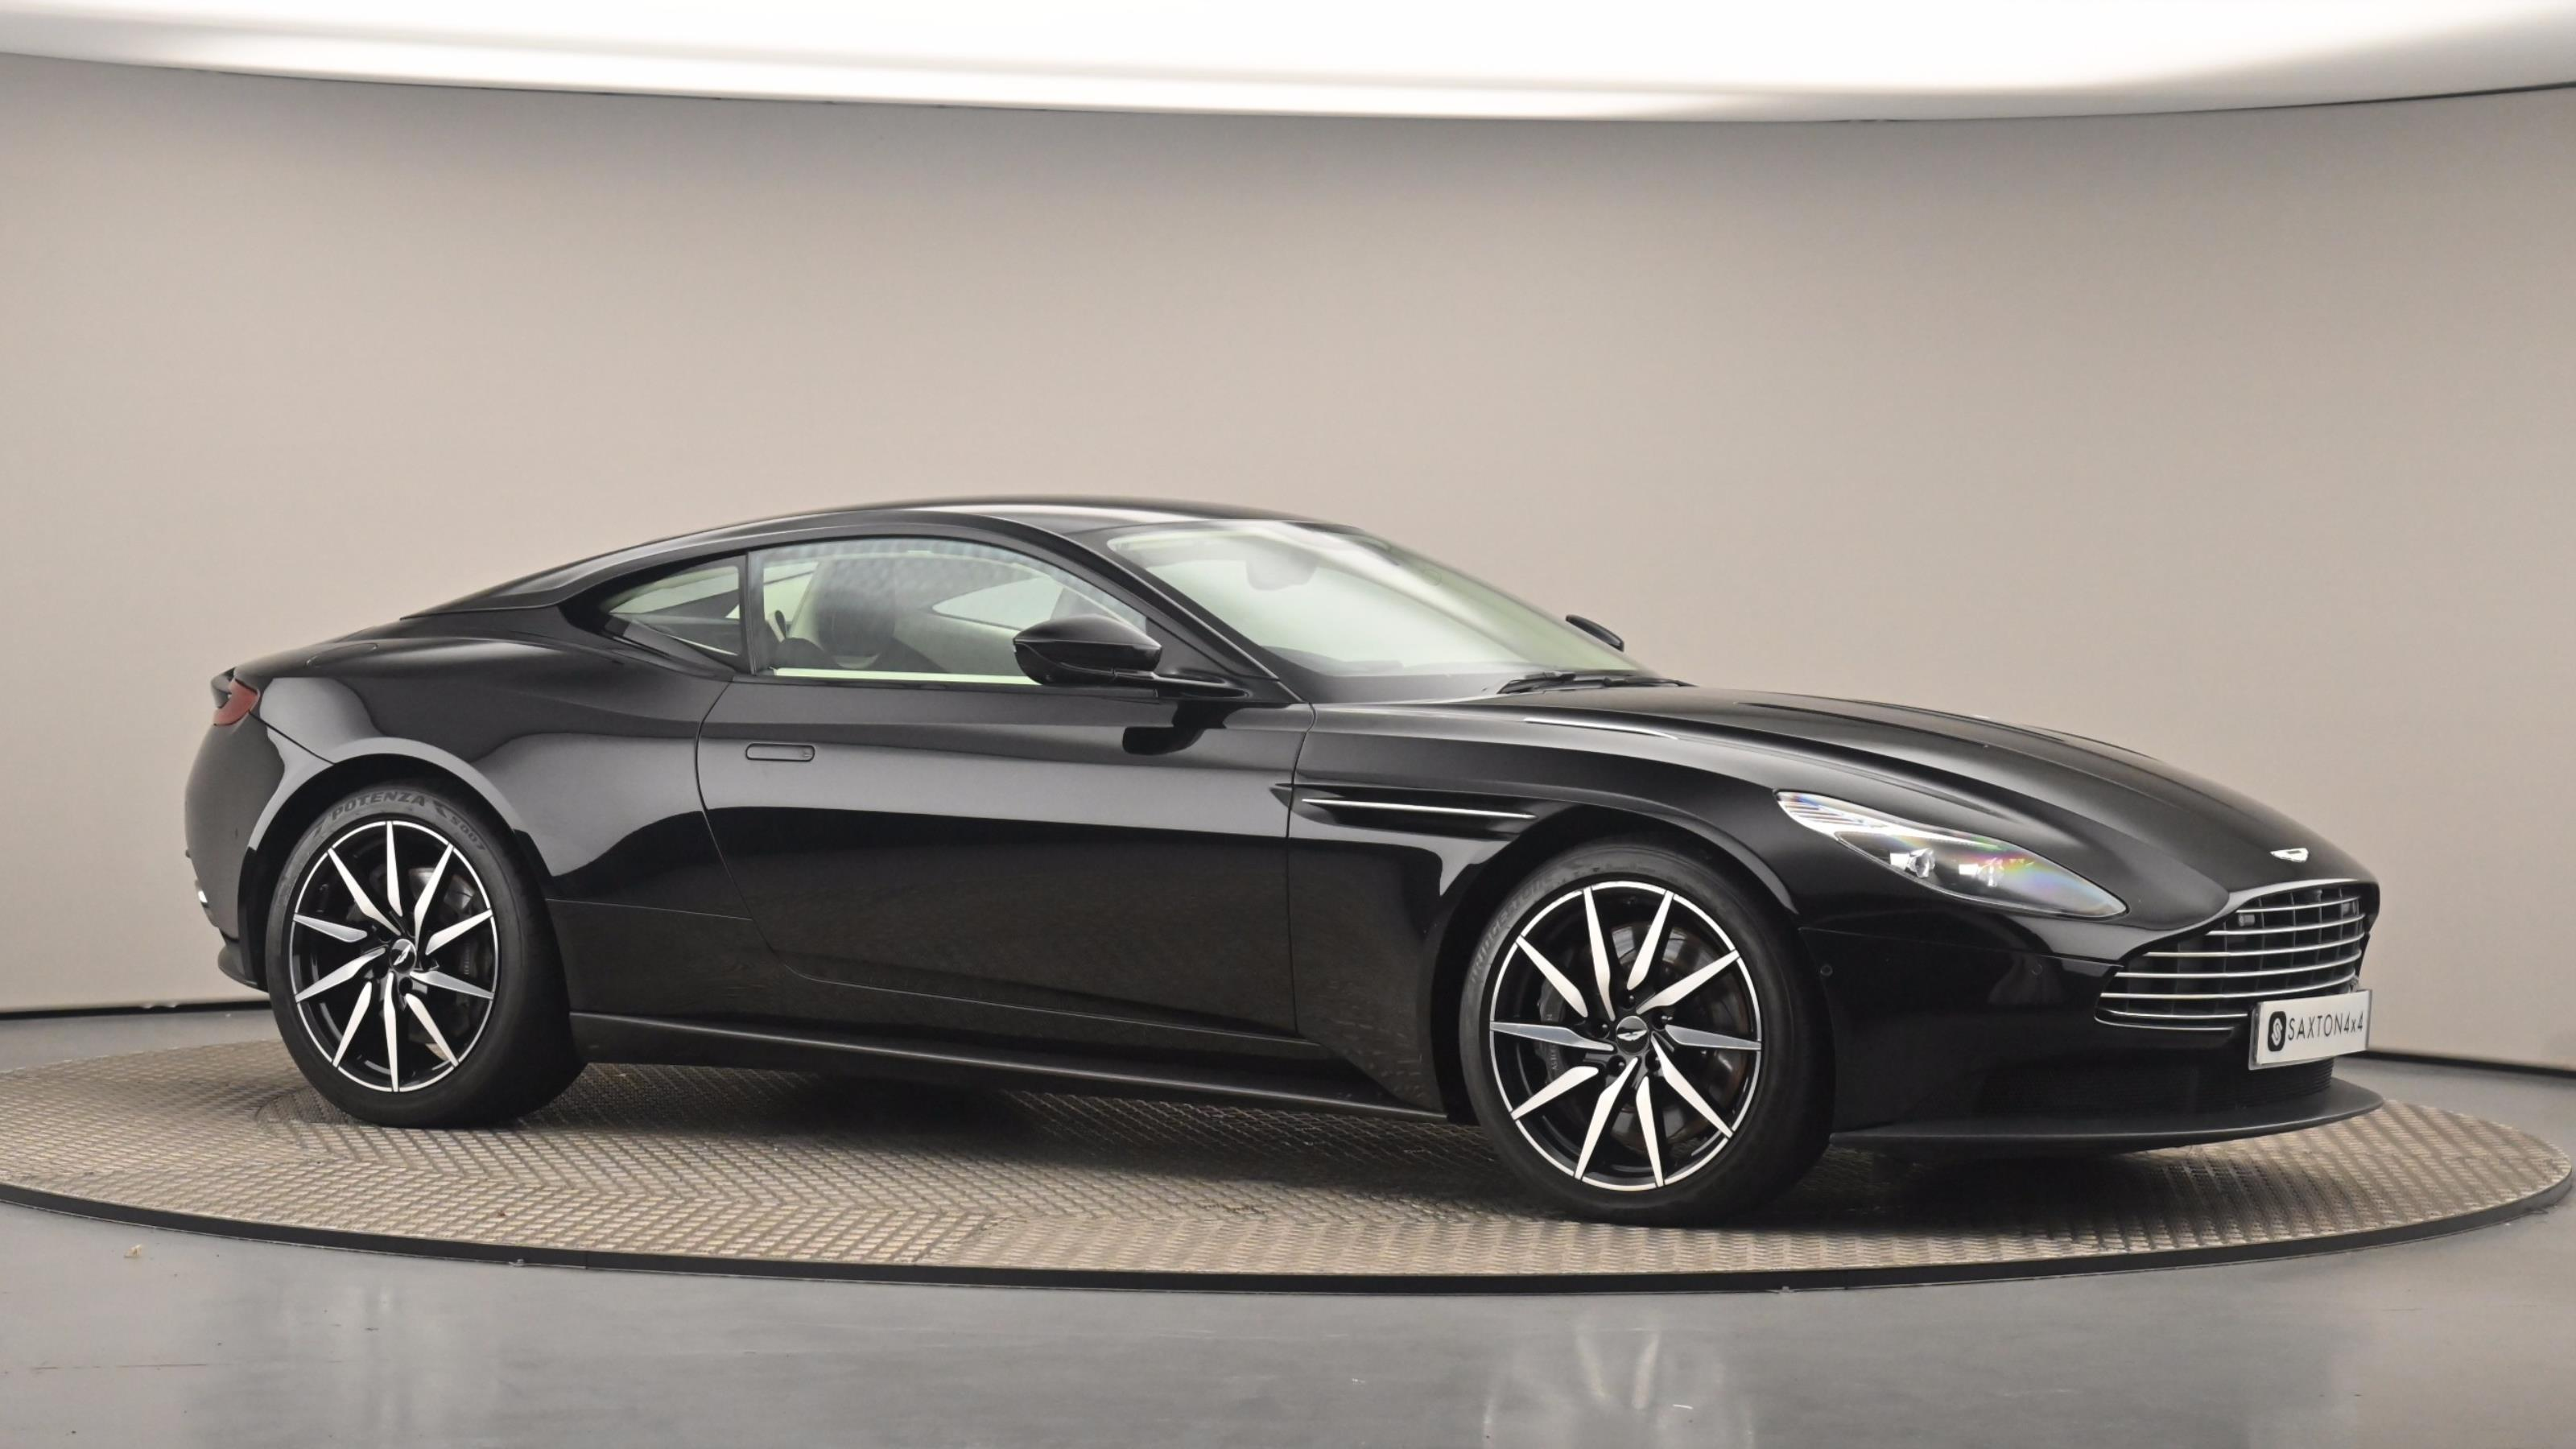 Used 2017 Aston Martin DB11 V12 Launch Edition 2dr Touchtronic Auto BLACK at Saxton4x4